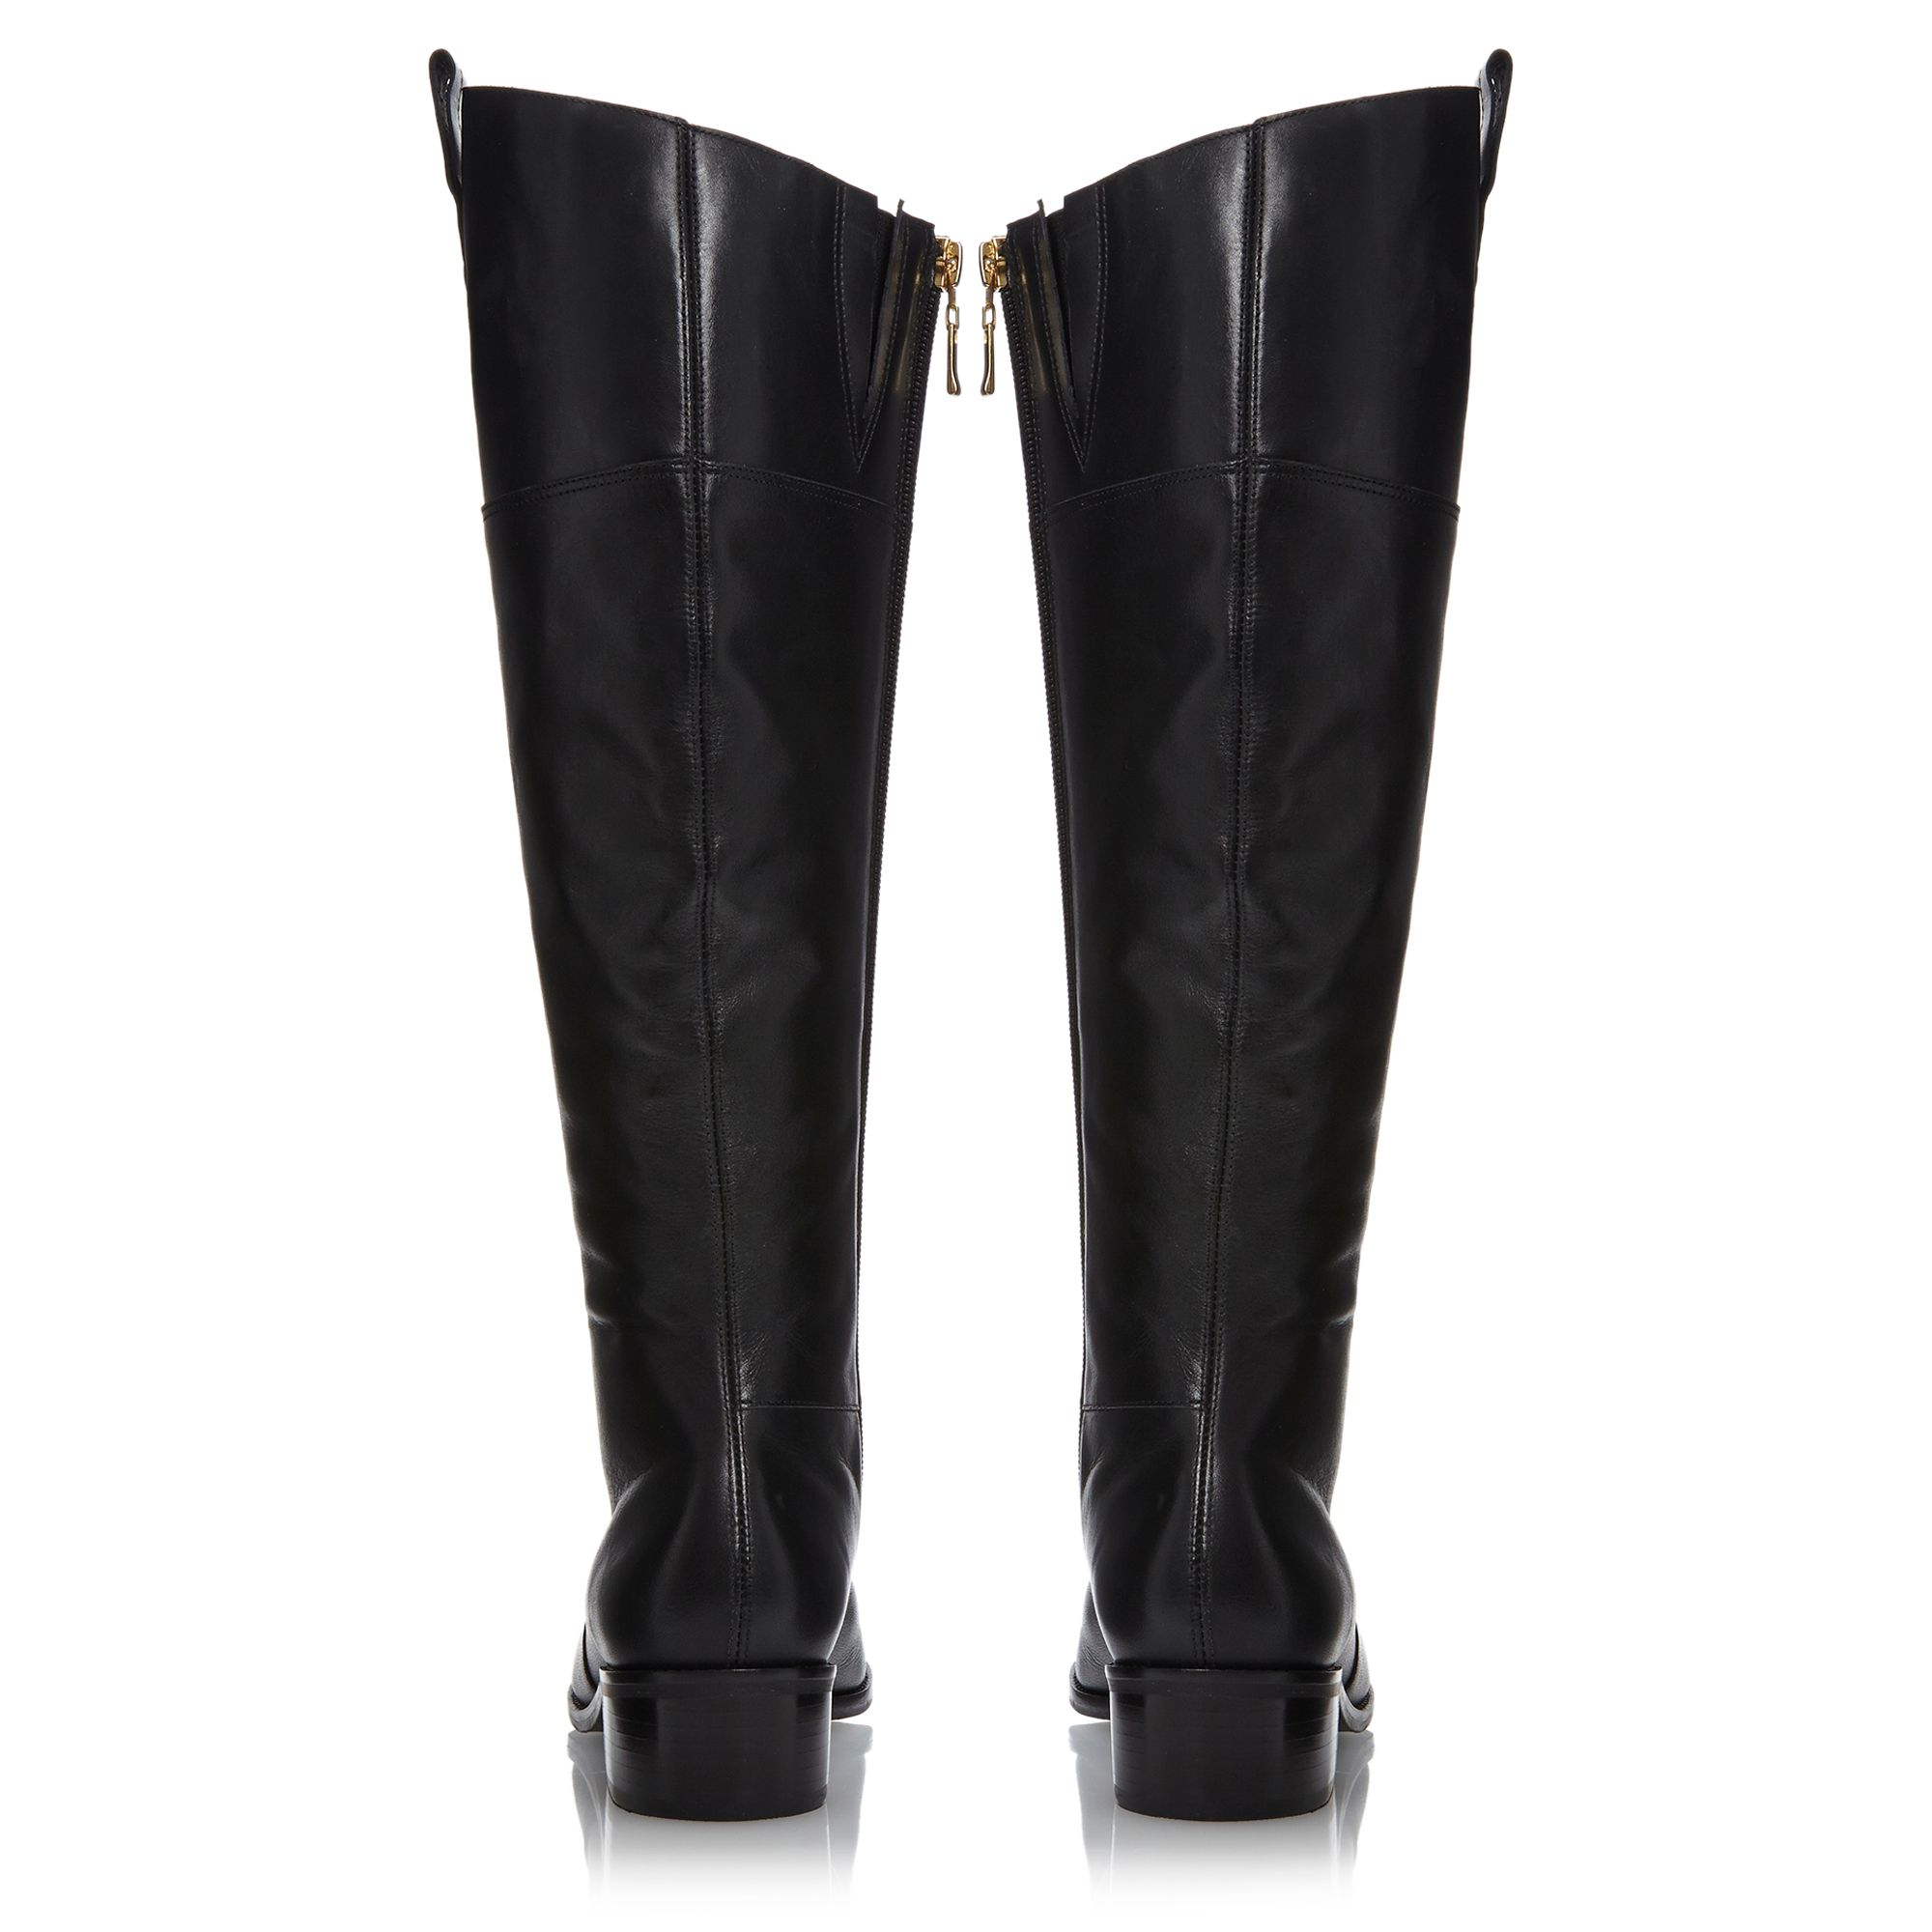 Troonbridge contrast collar riding boots